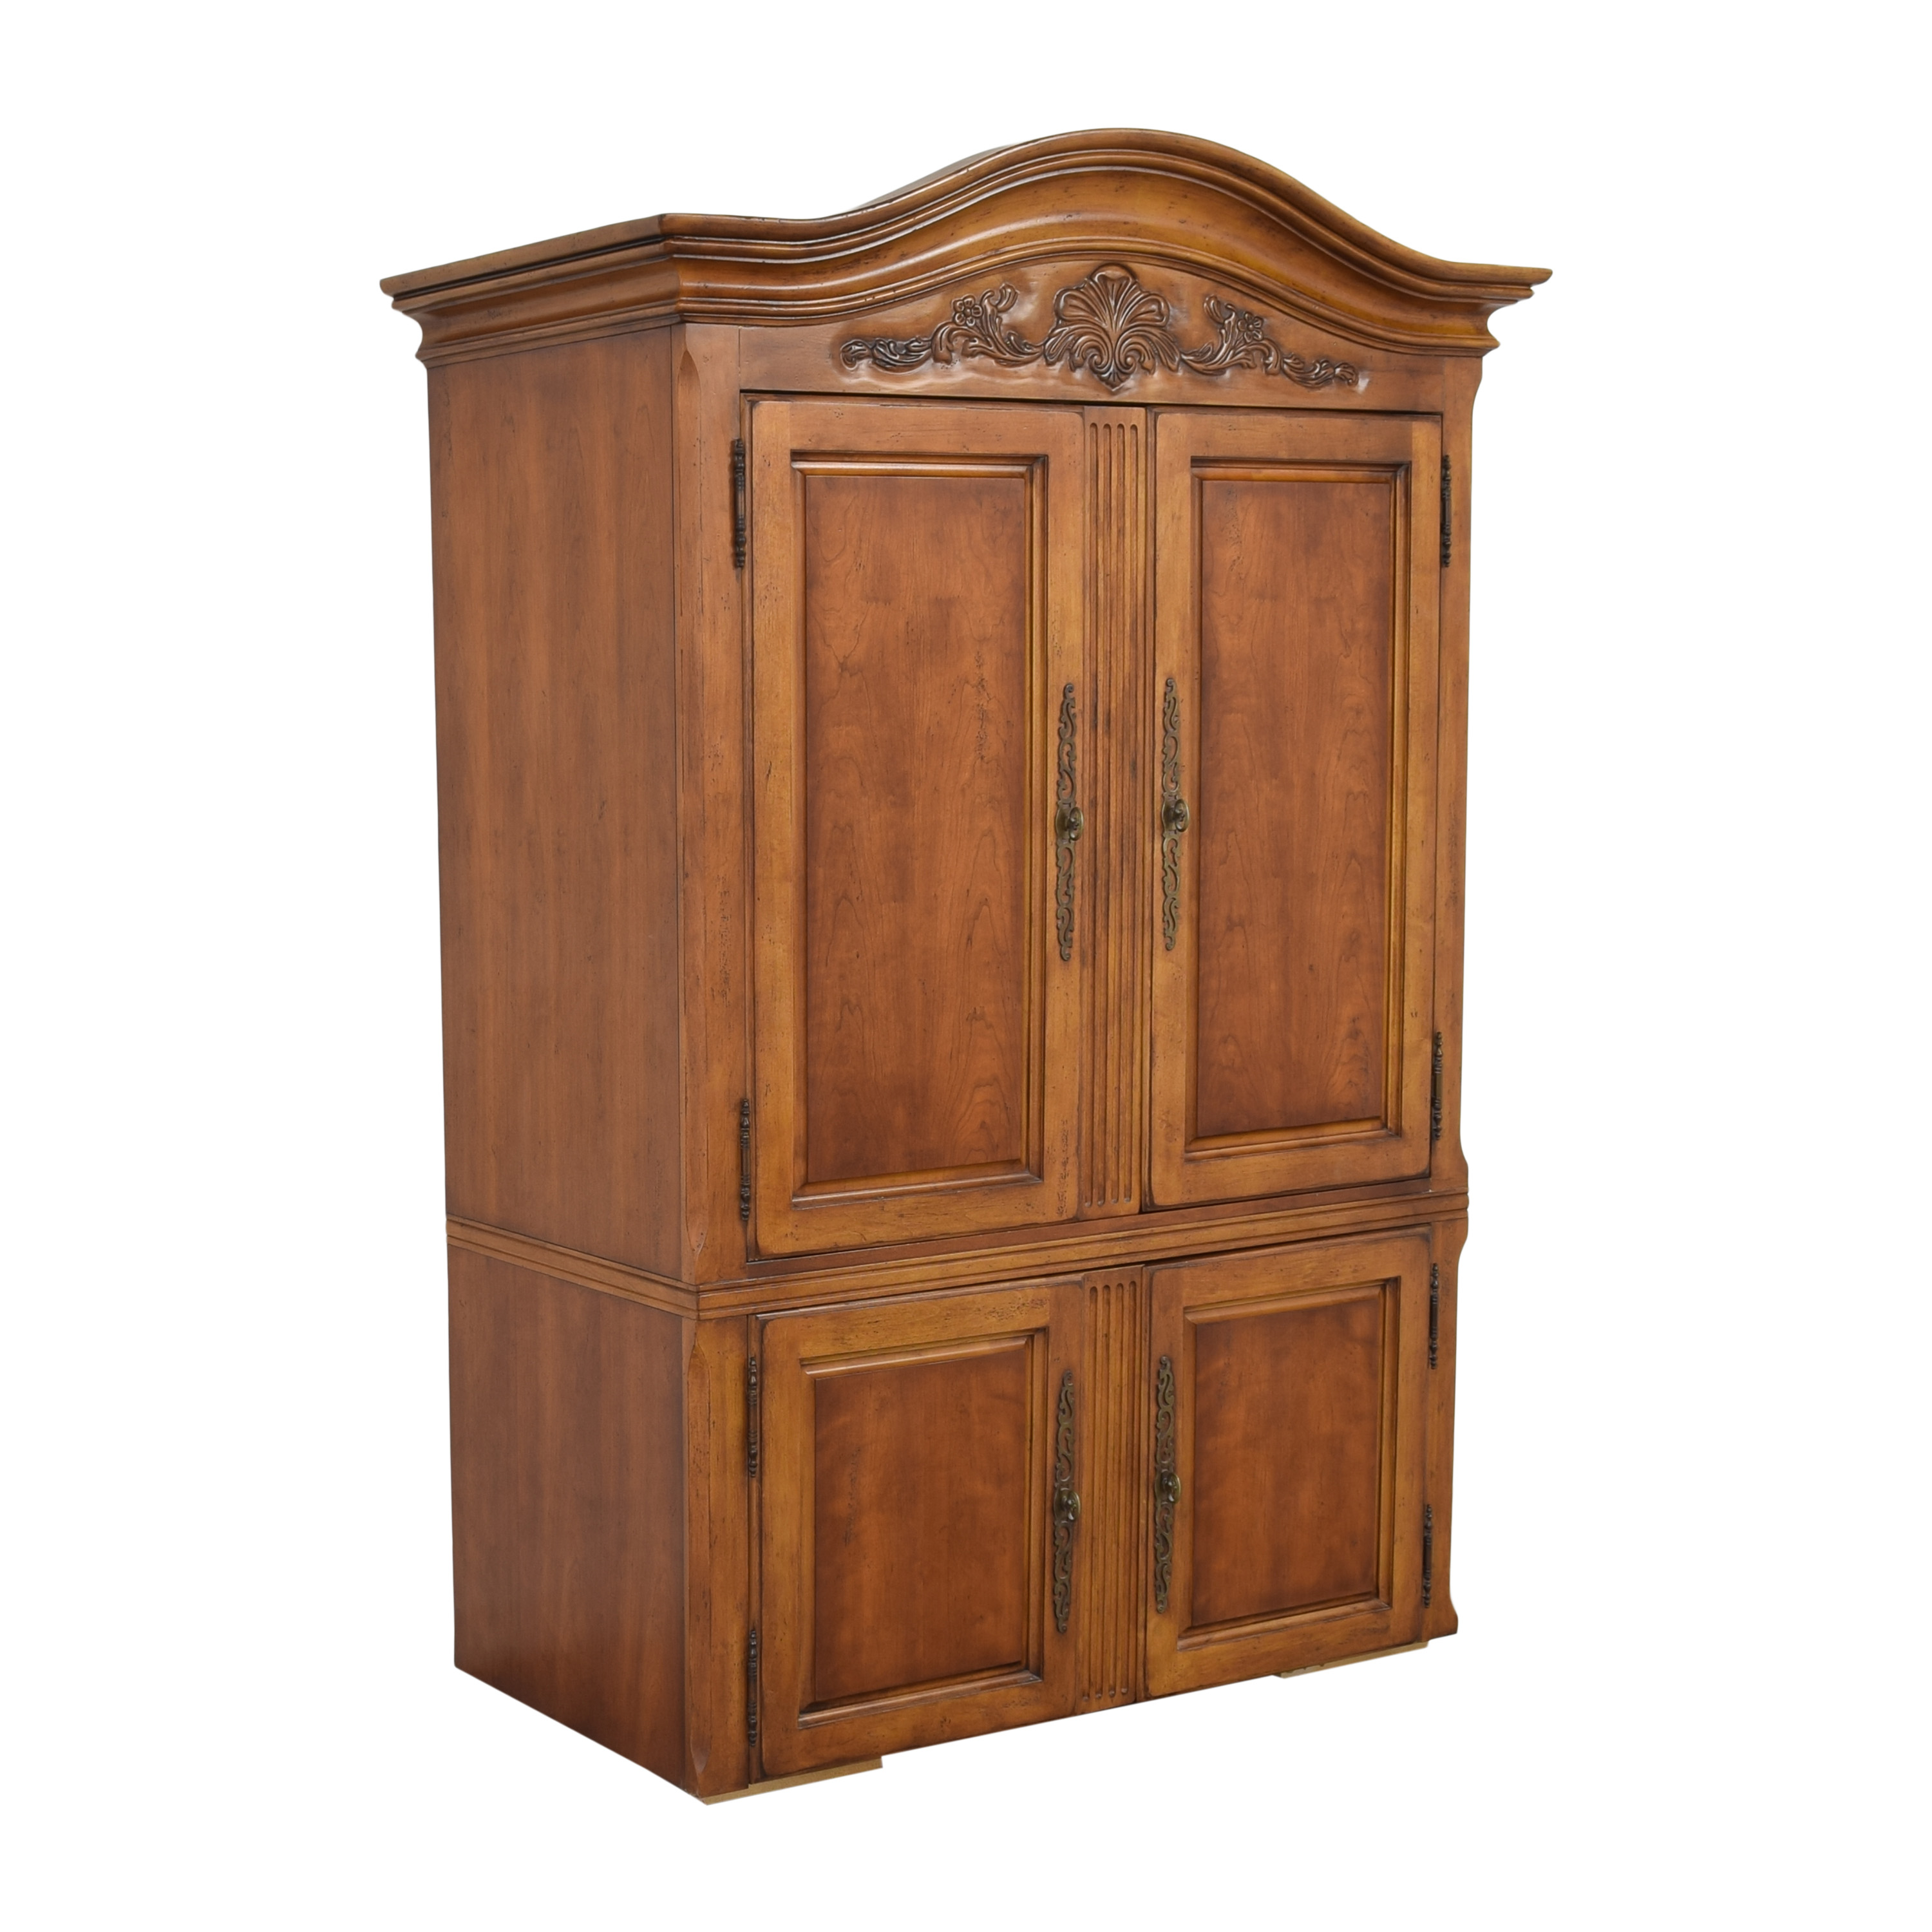 Century Furniture Century Furniture Media Armoire with Drawers for sale